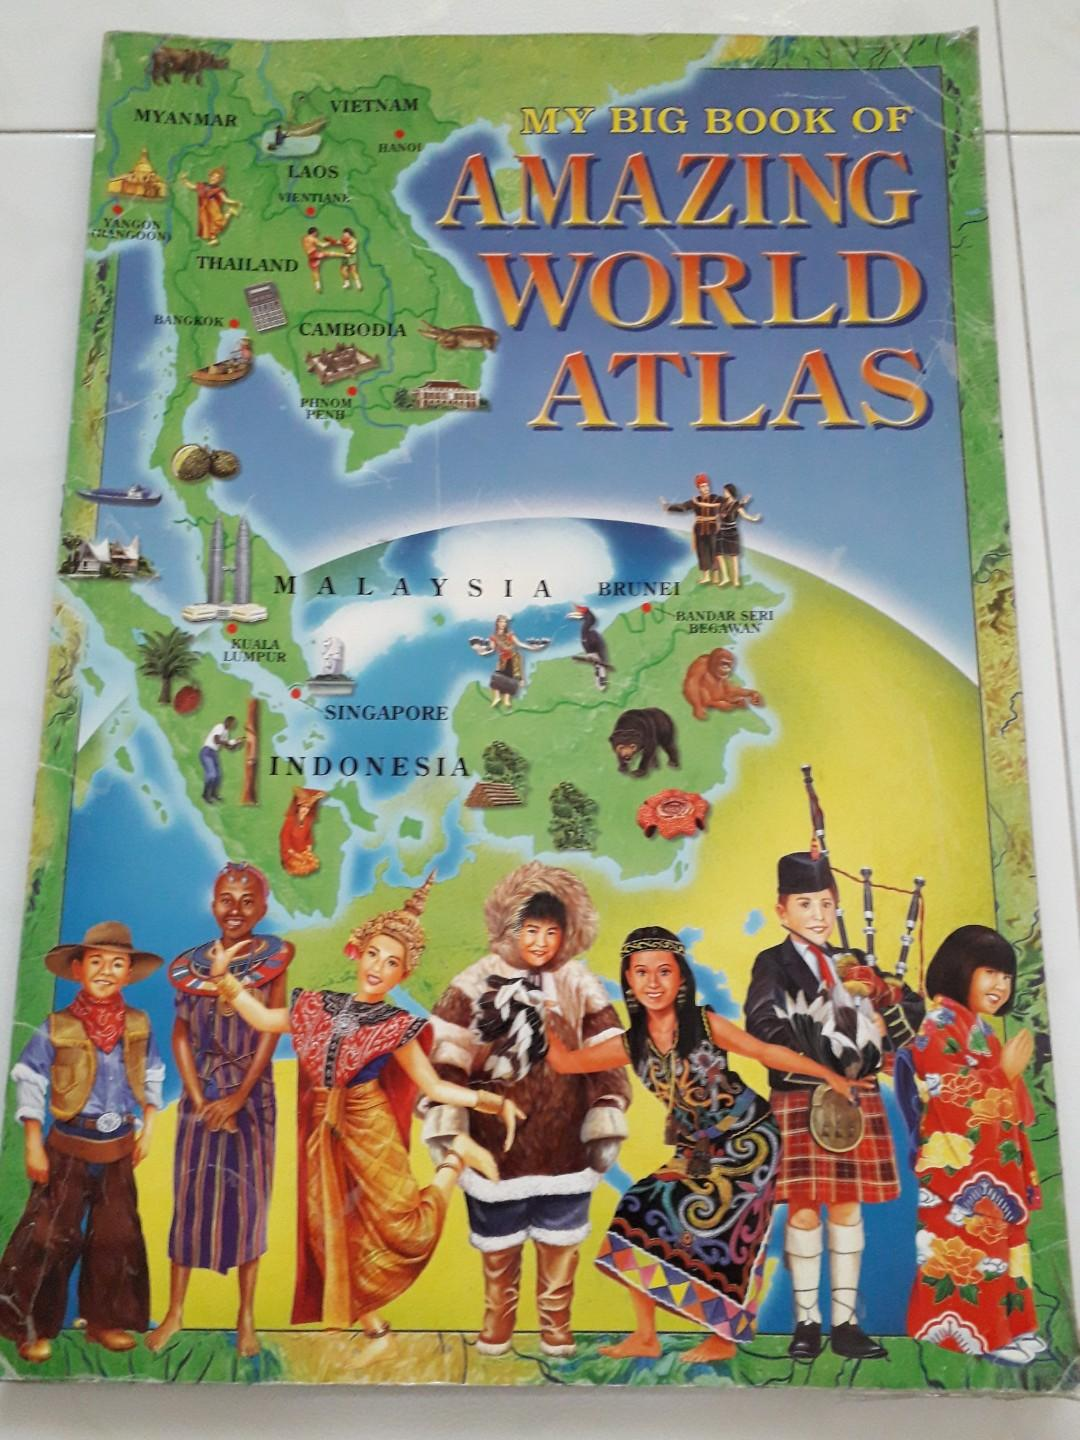 My Big Book of Amazing World Atlas, Books & Stationery